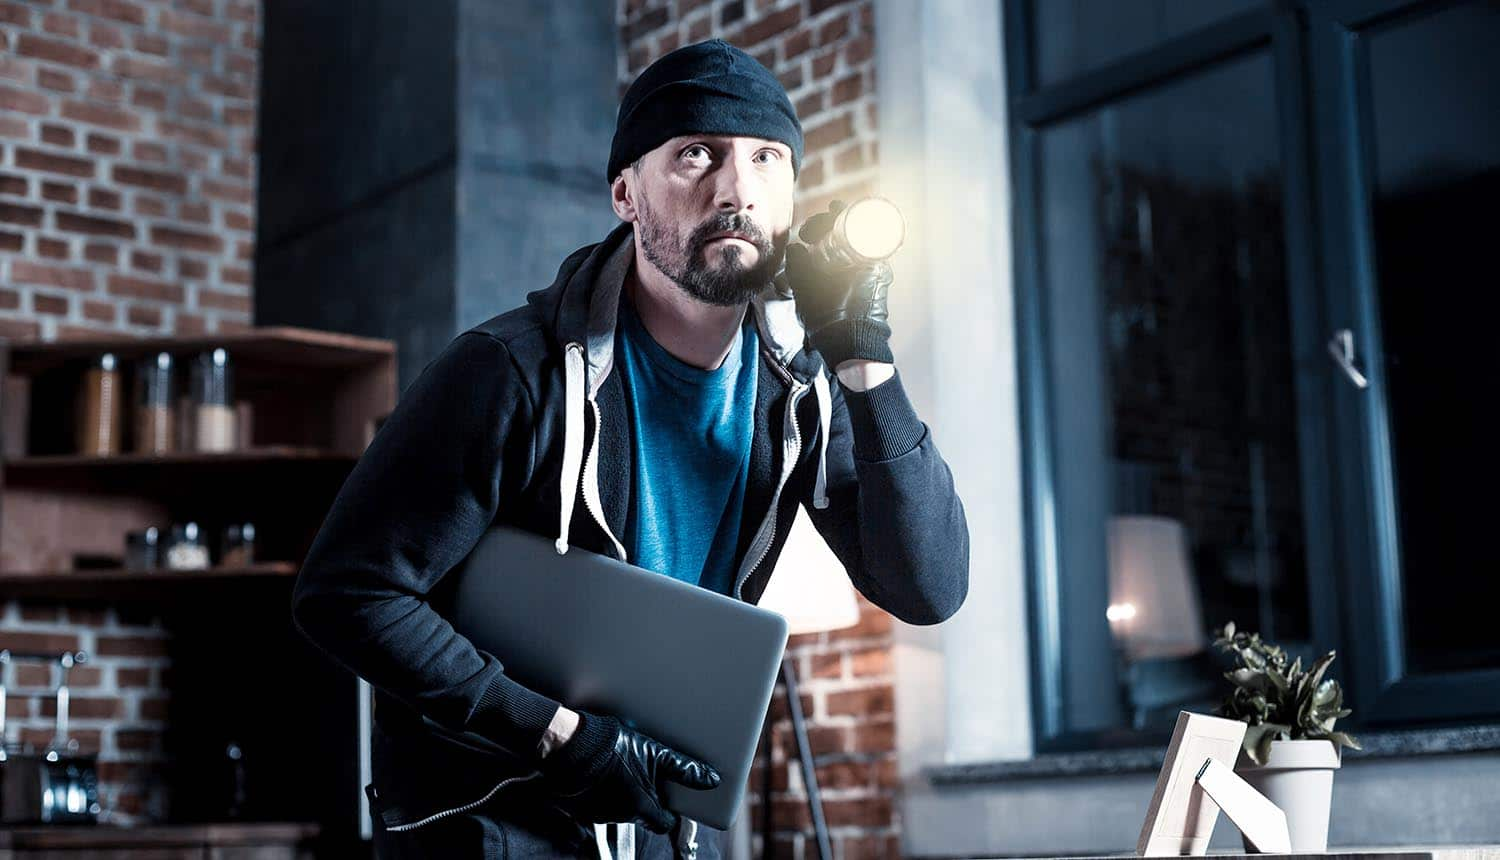 Professional burglar wearing black gloves and holding a torch showing data theft